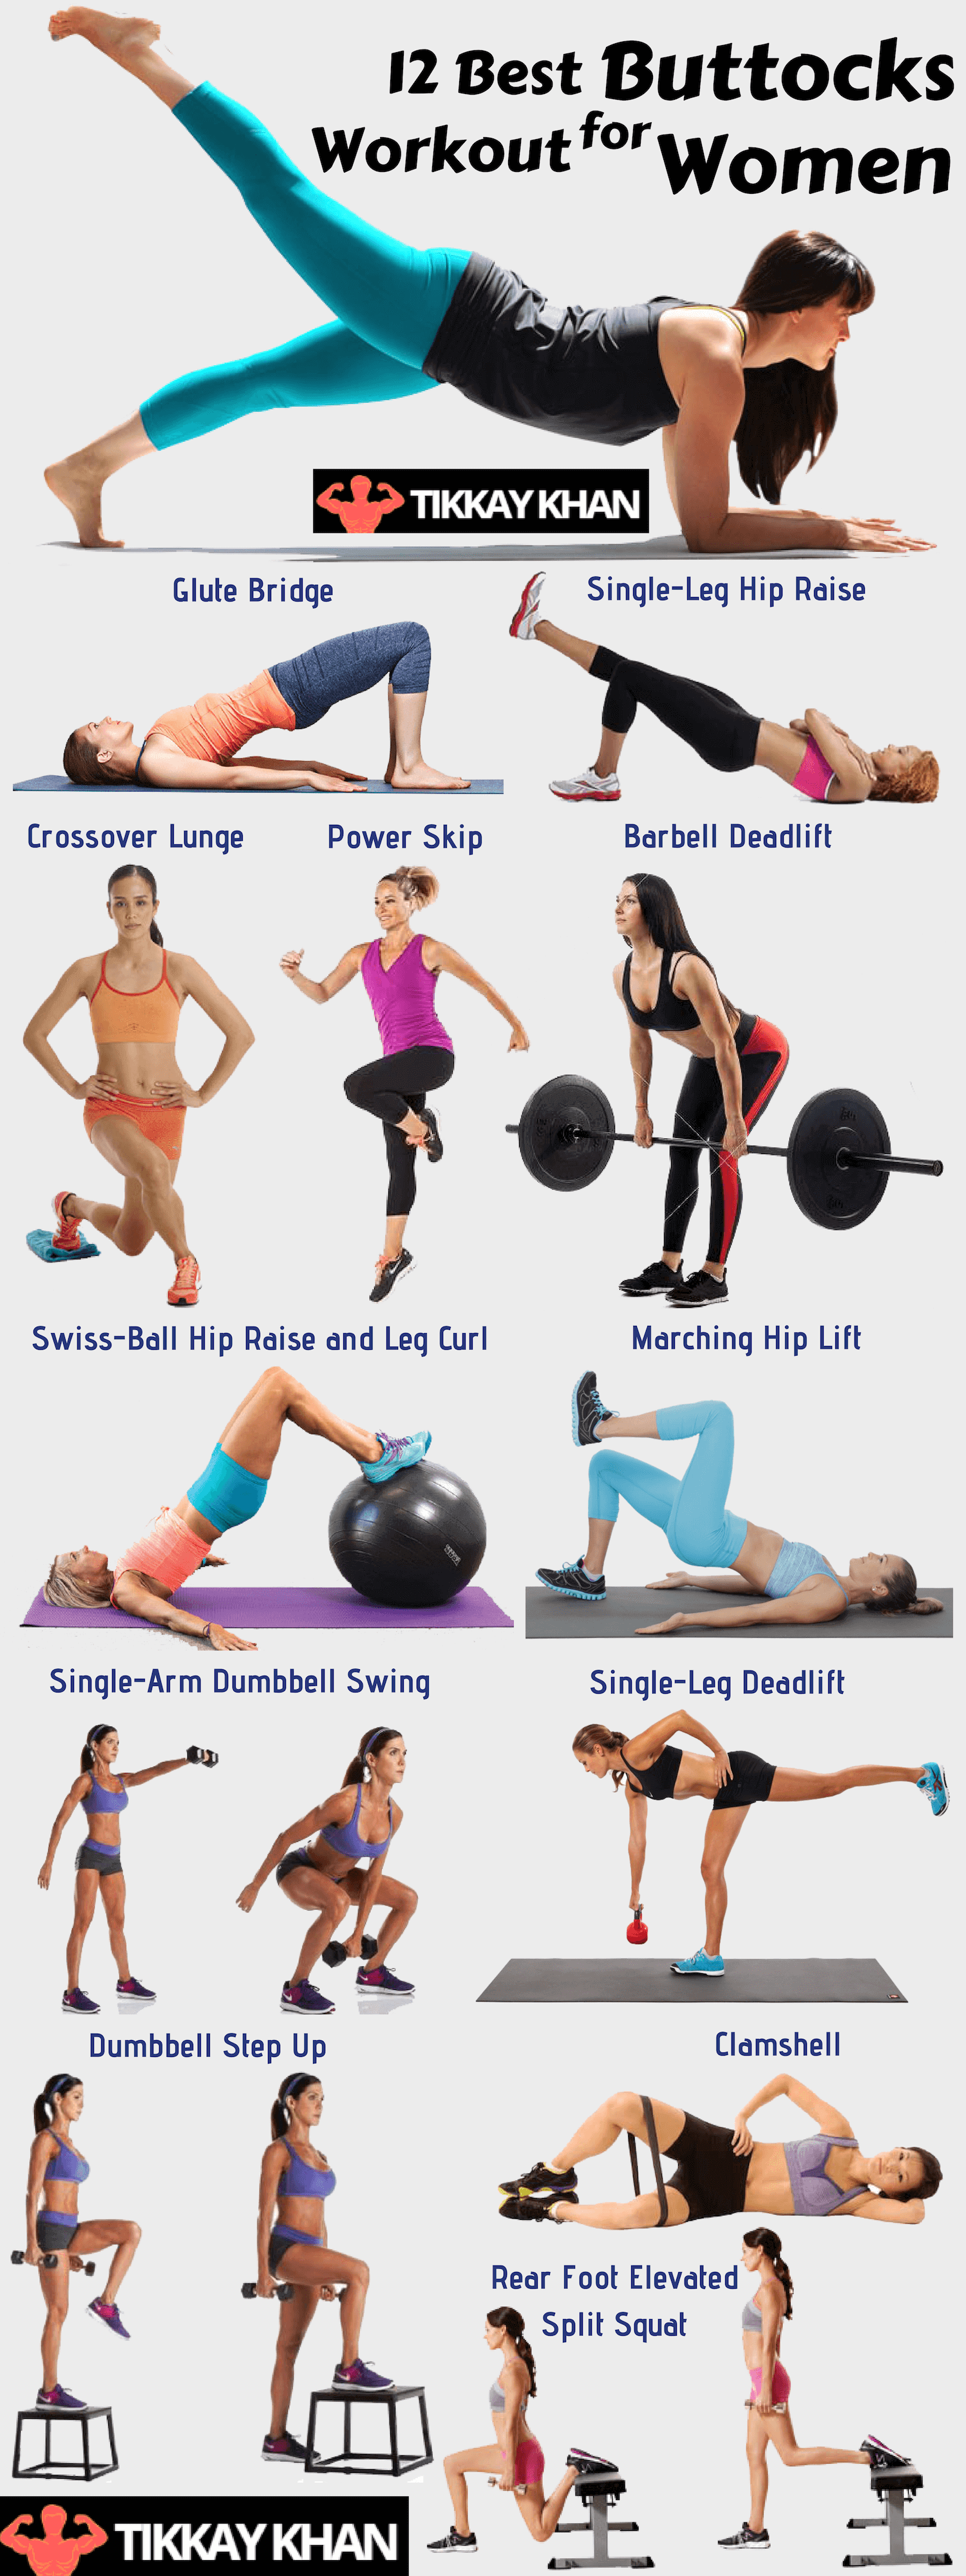 12 Best Buttocks Workout for Women Infographics